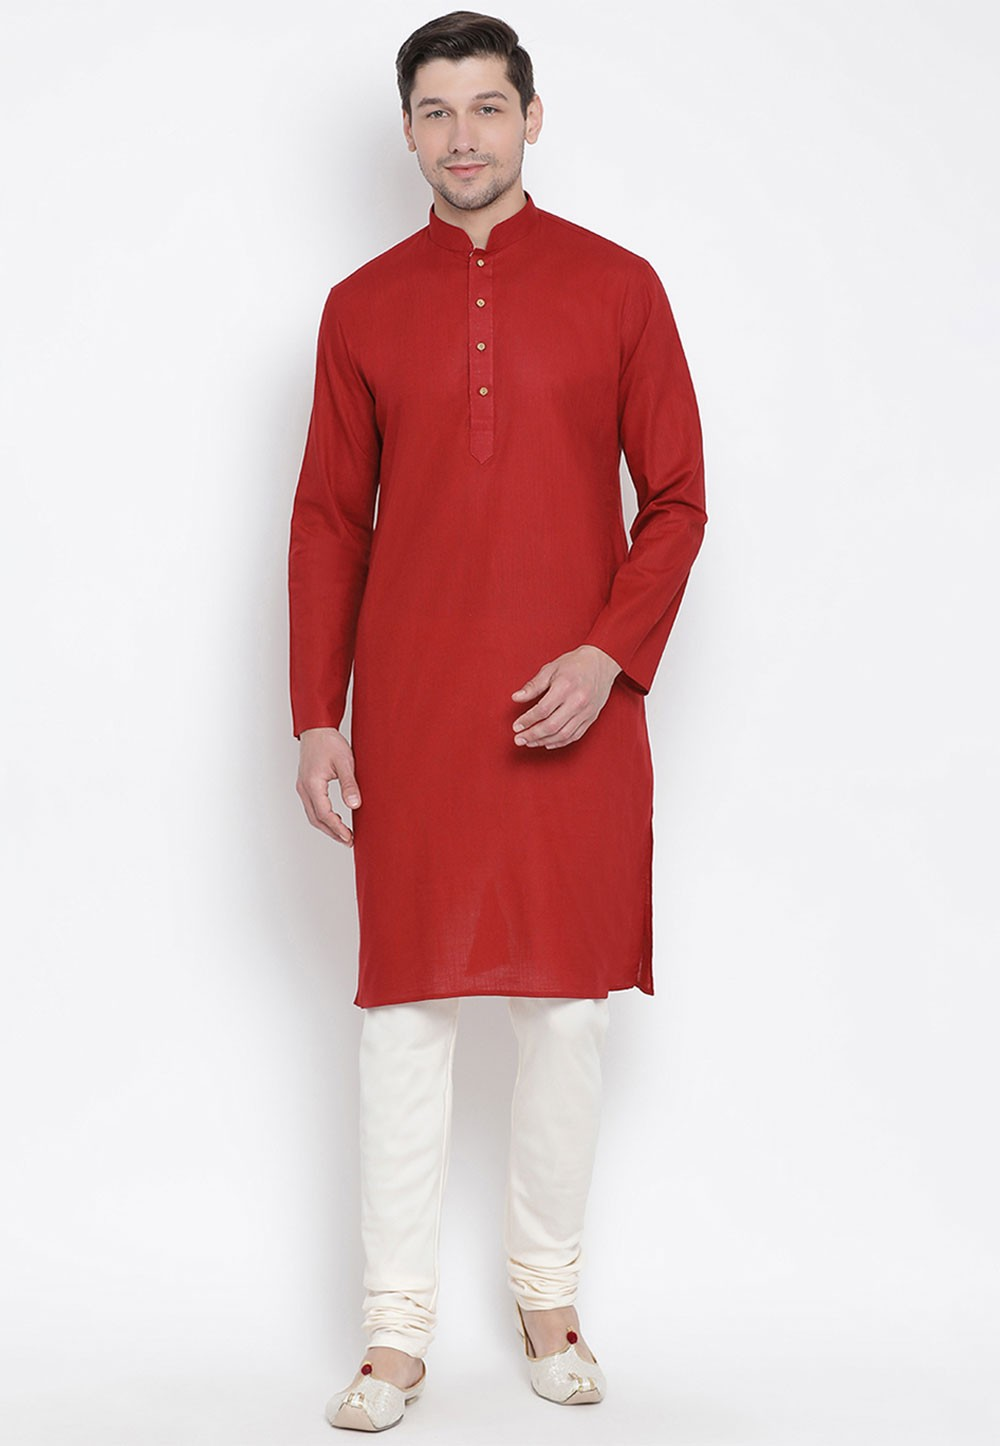 Maroon Colour Indian Kurta Pyjama.